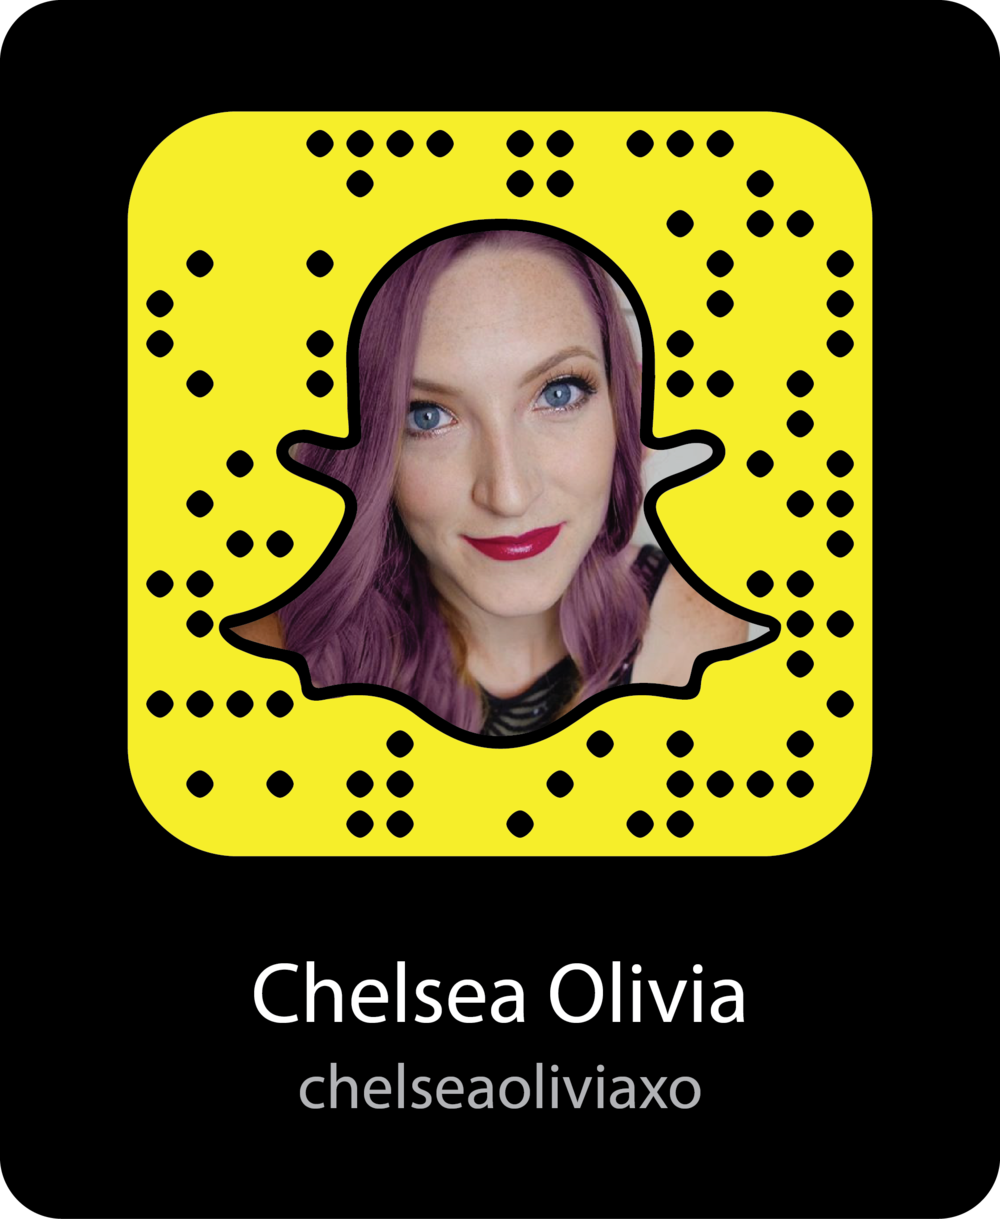 chelseaoliviaxo-Beauty-Bloggers-snapchat-snapcode.png